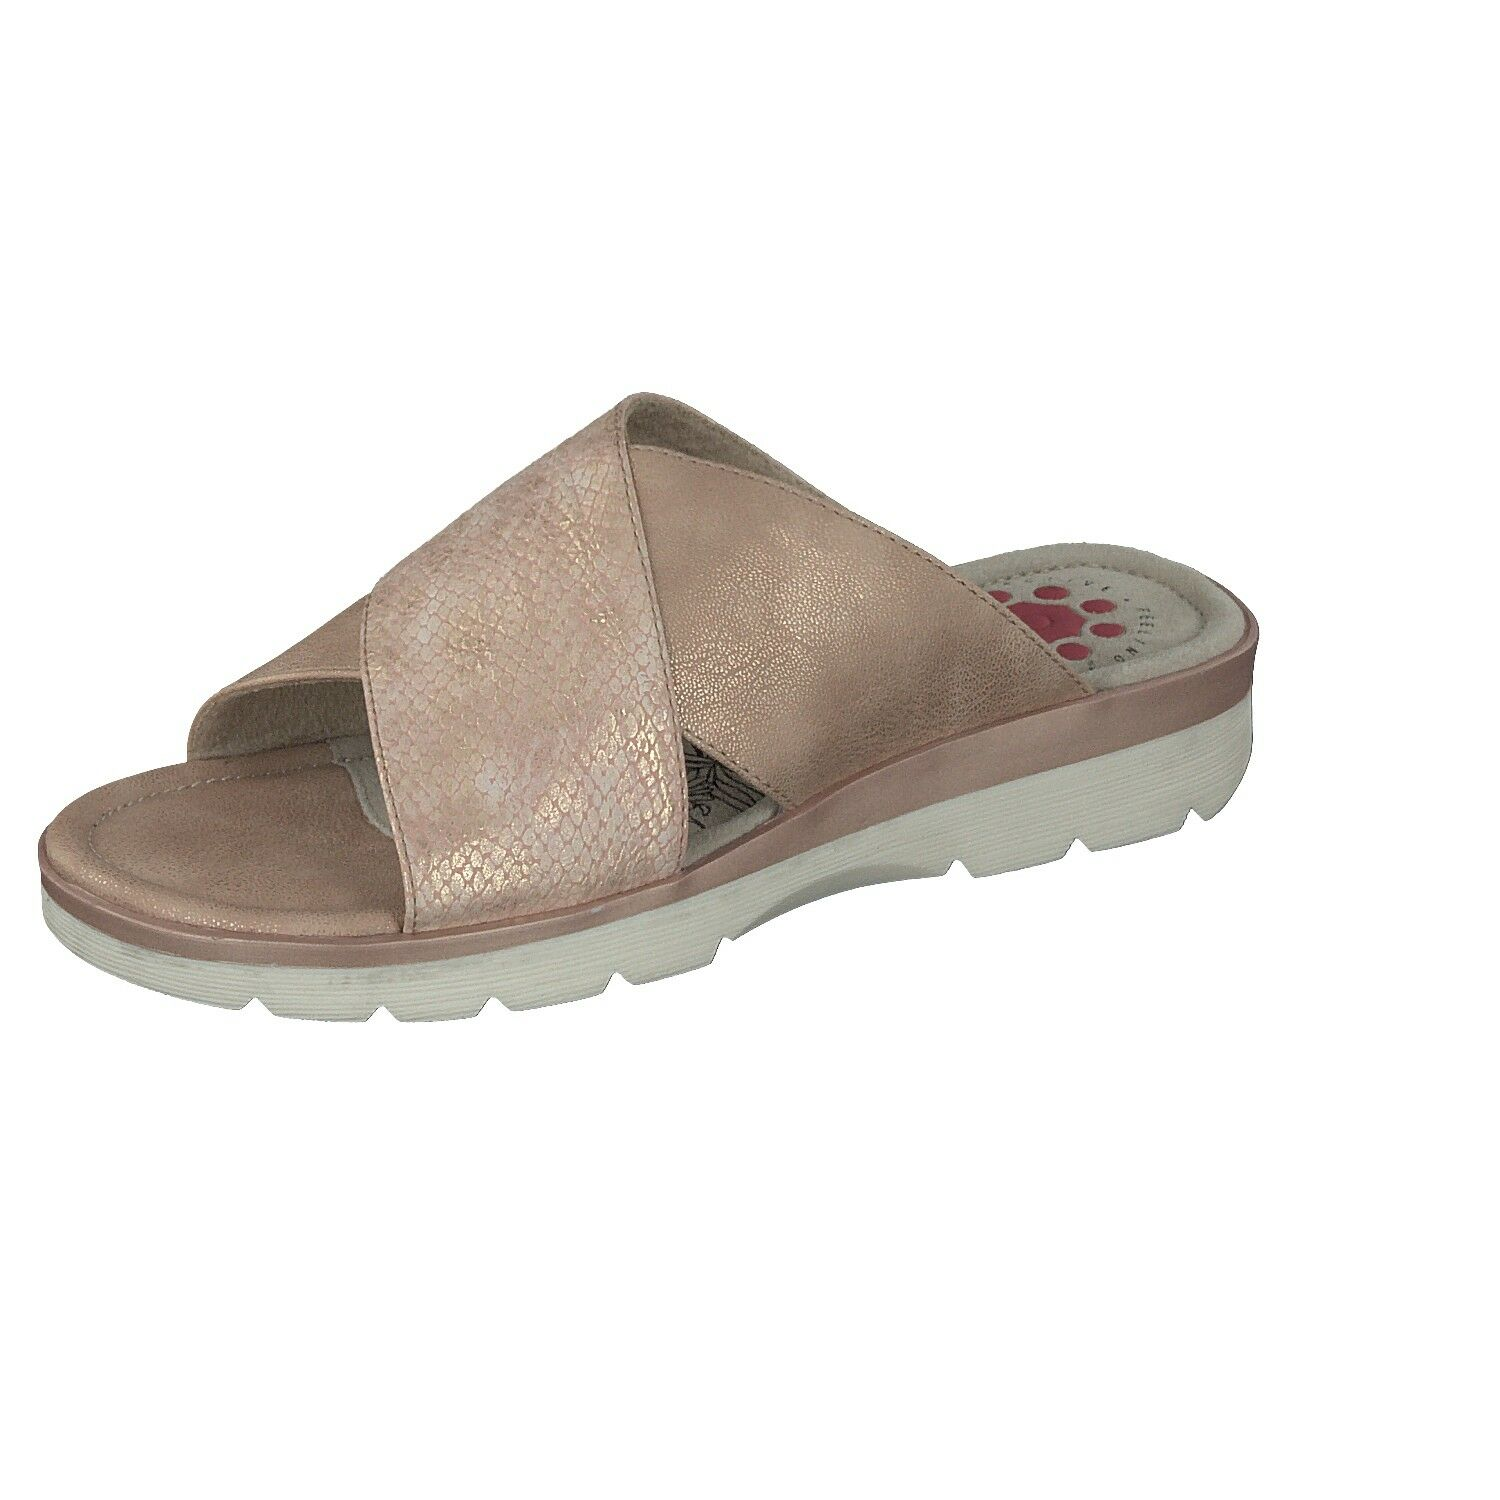 RELIFE Ladies shoes Leisure Mules Slippers 8717-17702-04 in pink Shiny